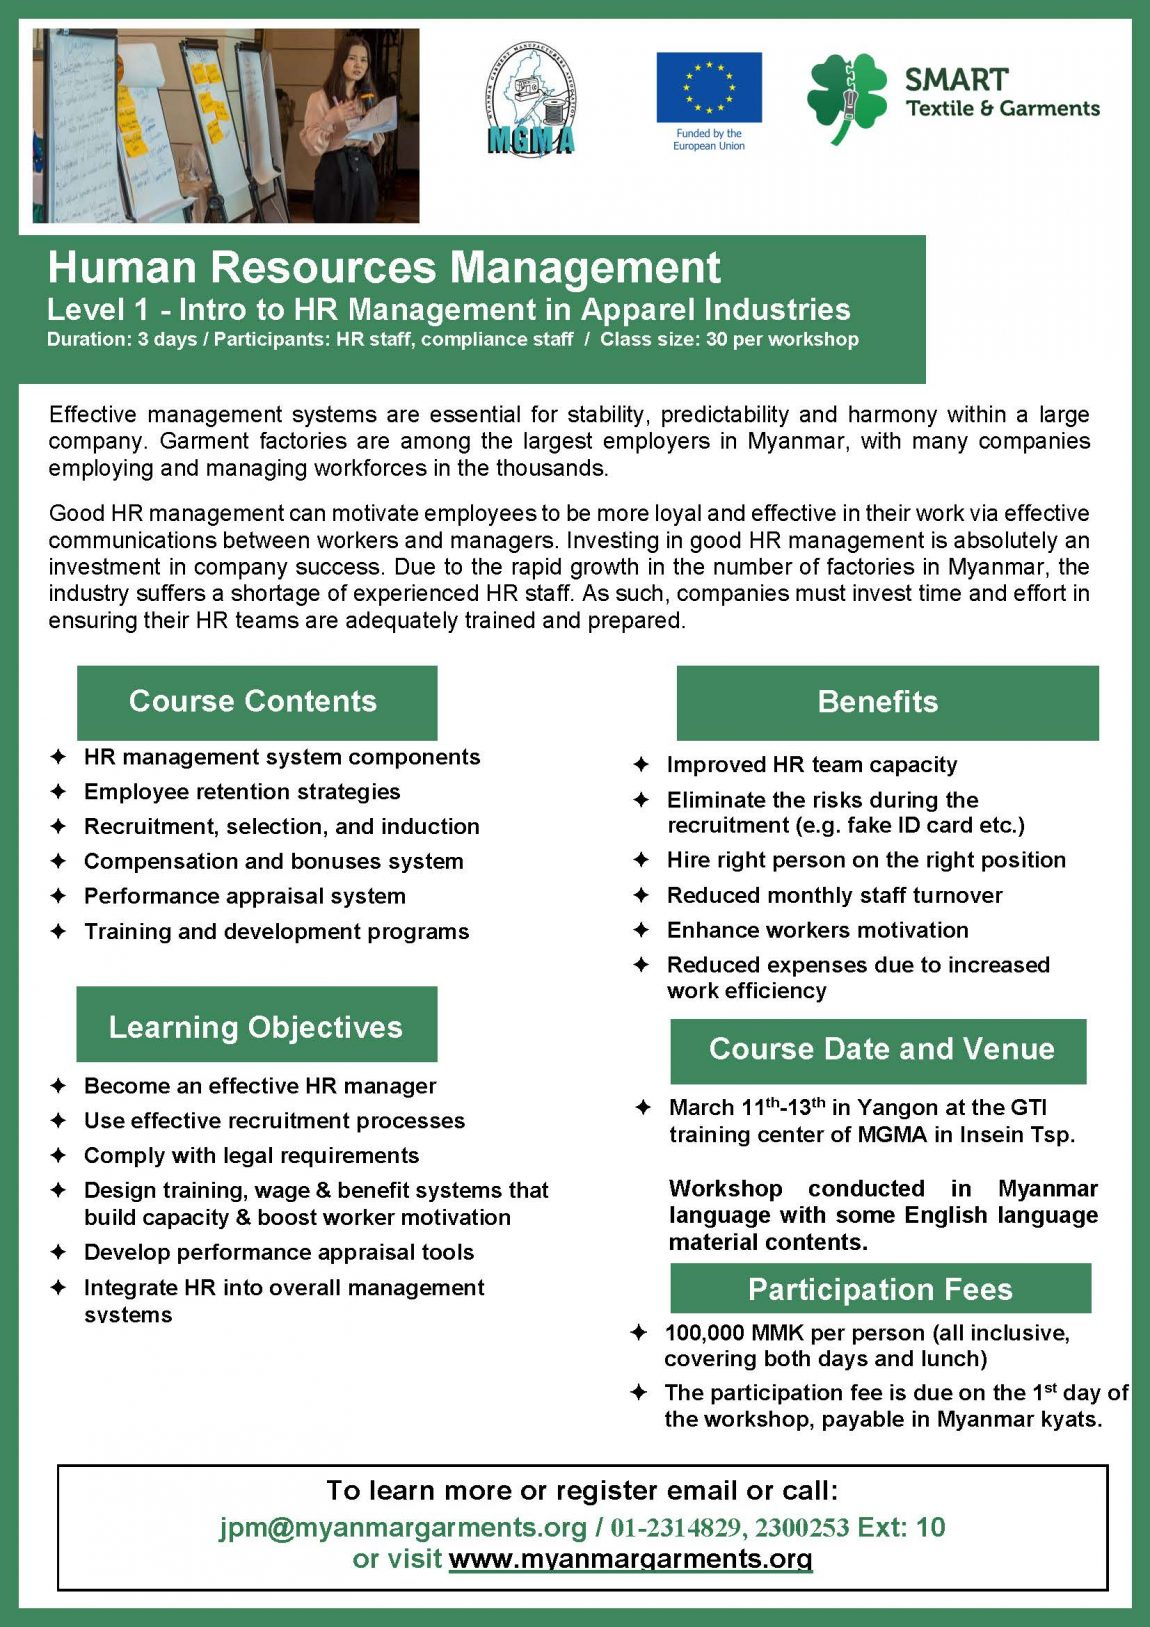 Human Resource Management Level -1 Intro to HR Management in Apparel Industries